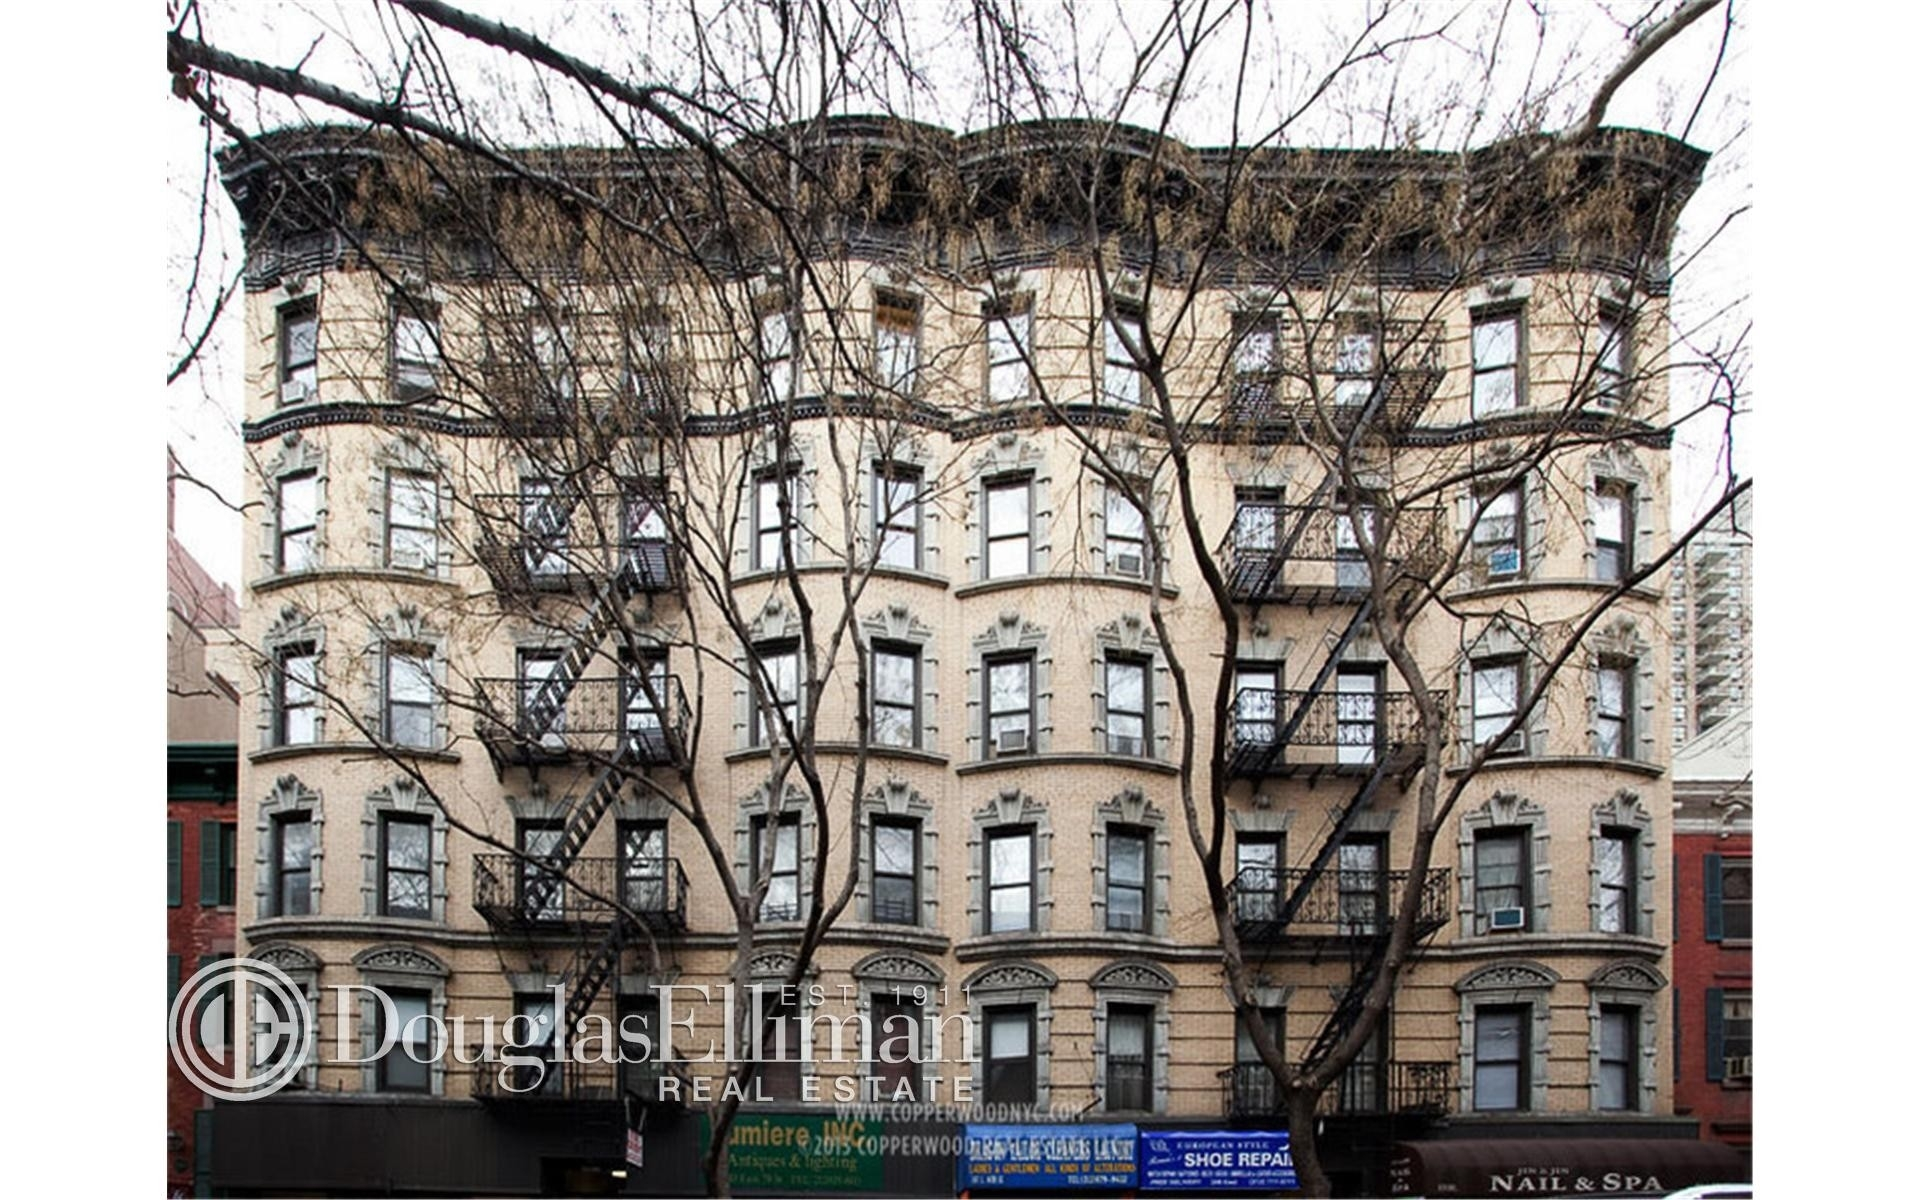 2. building at 253 East 78th St, Upper East Side, New York, NY